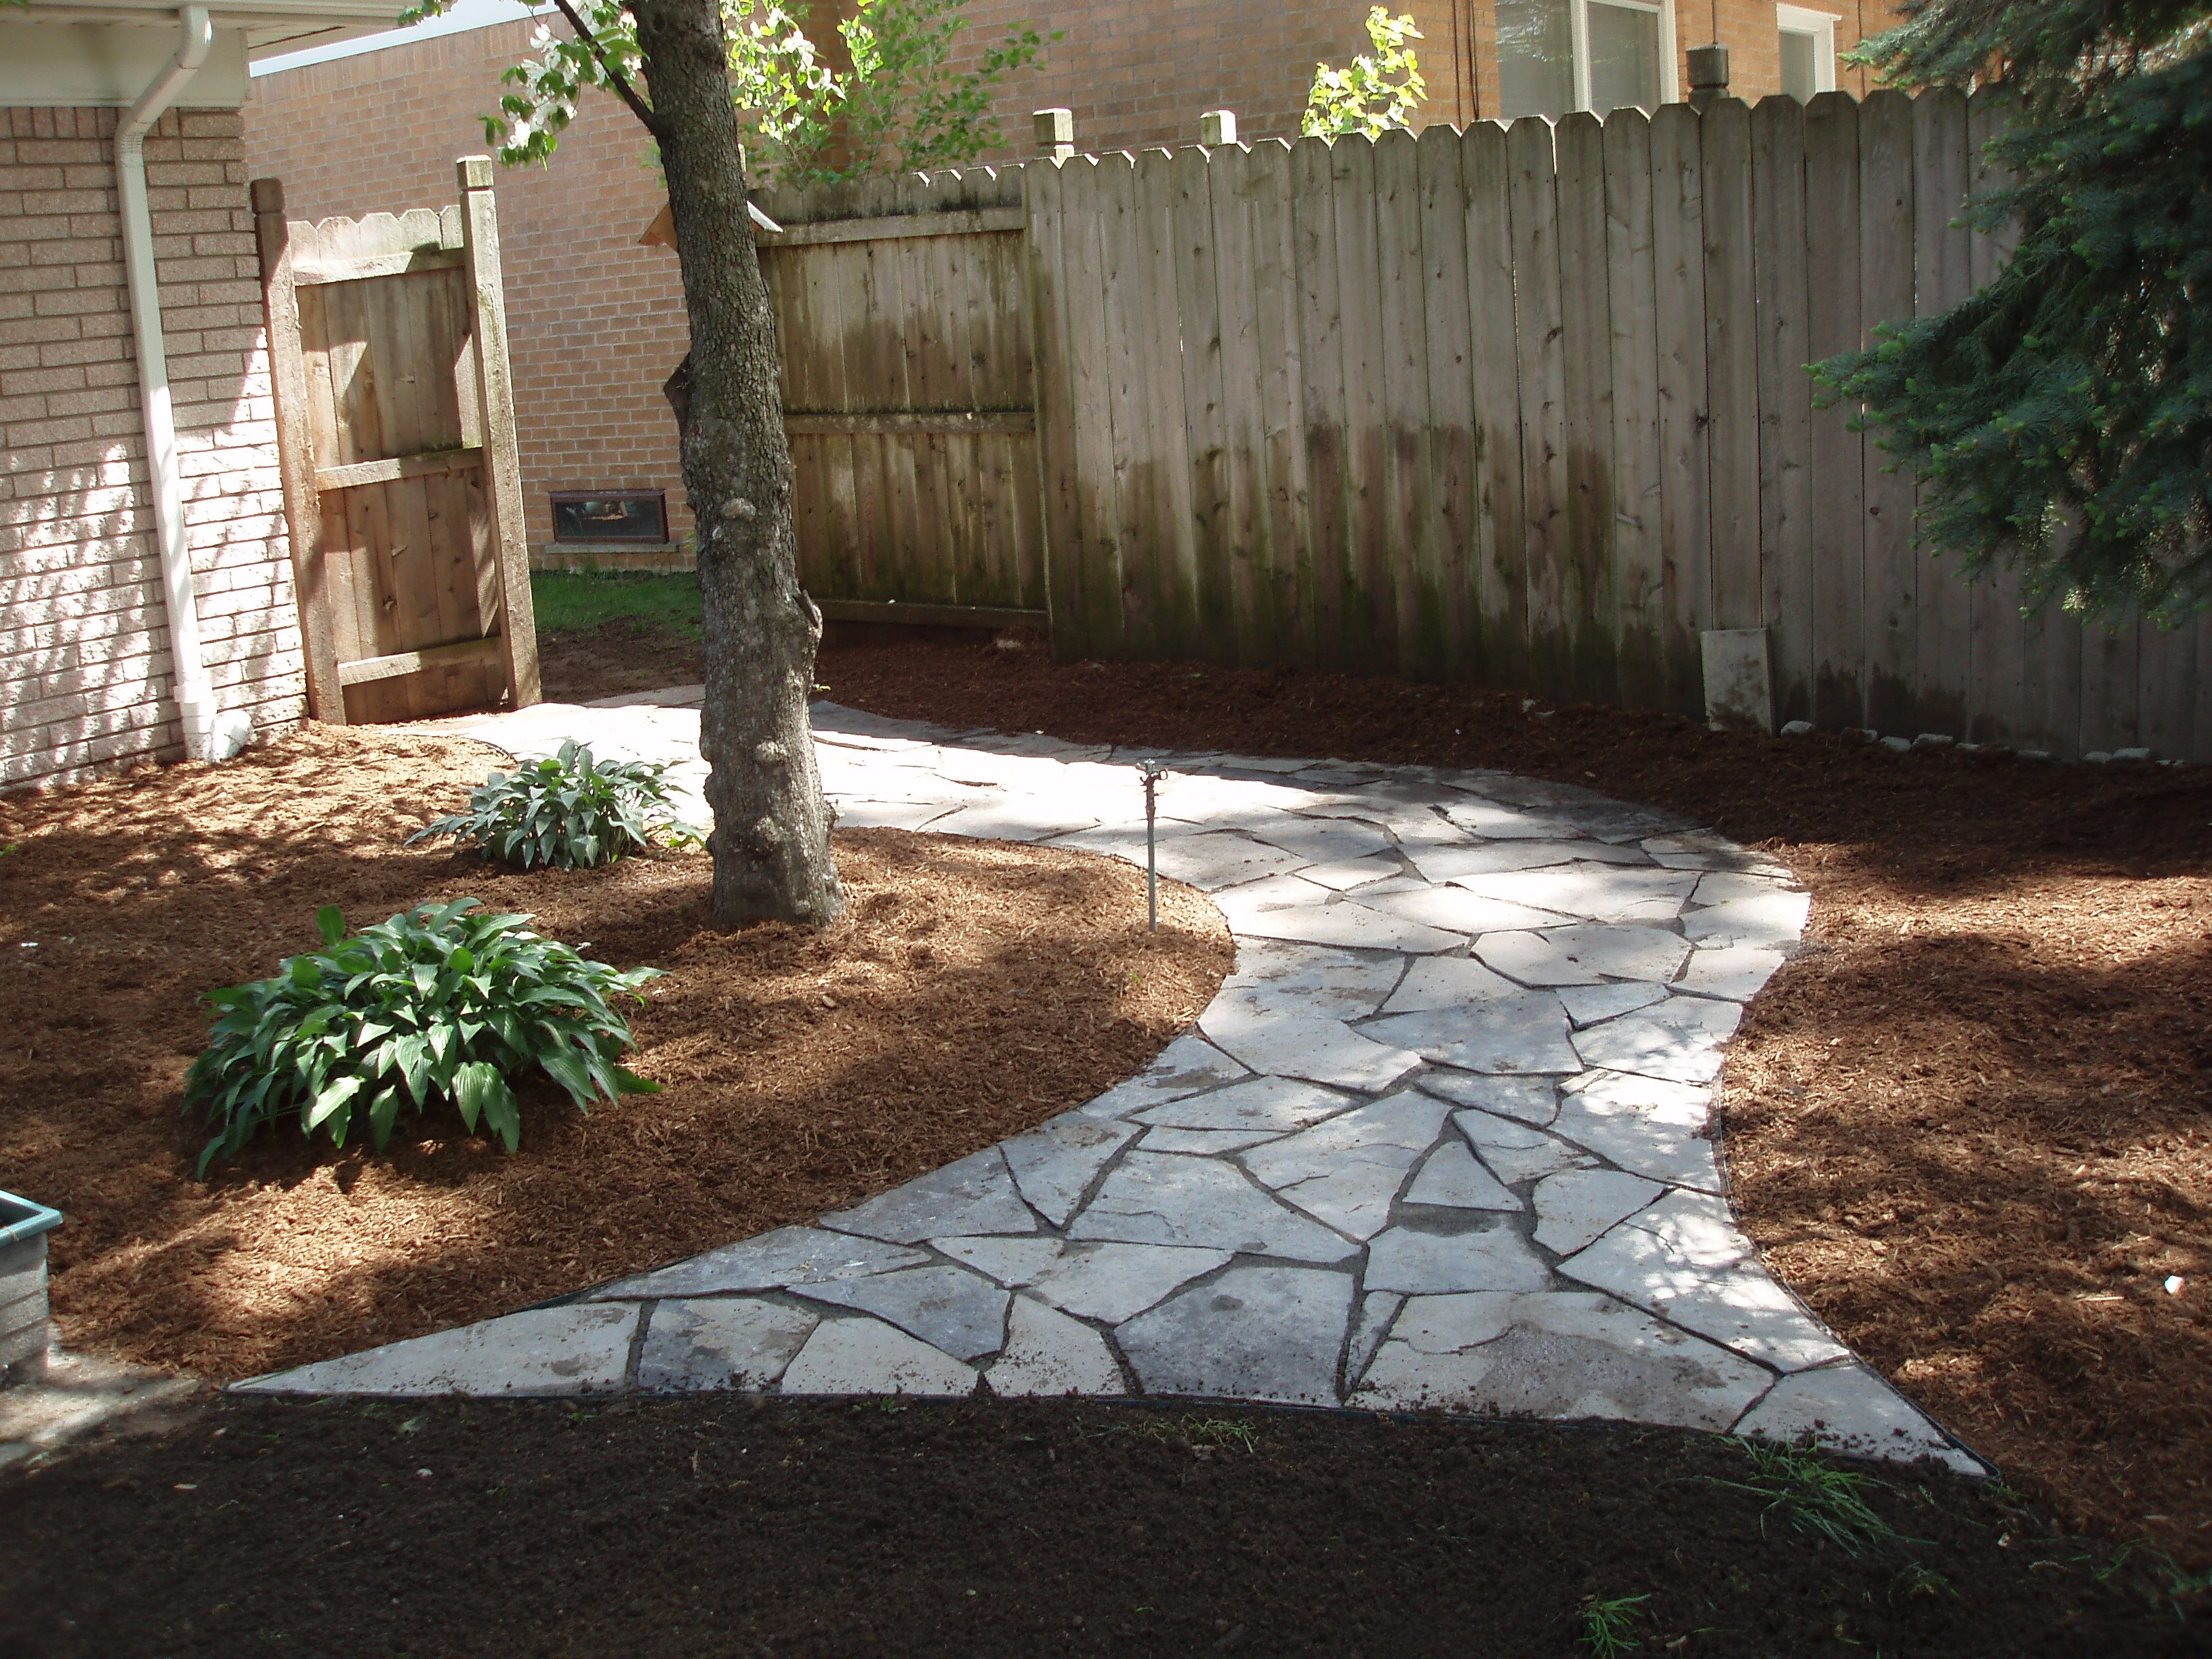 grless backyard landscaping ideas | Mulch and Compost around ... on pathway ideas for backyard, gazebo ideas for backyard, home ideas for backyard, fireplace ideas for backyard, fence ideas for backyard, water feature ideas for backyard, waterfall ideas for backyard, corner ideas for backyard, pond ideas for backyard, swimming pool ideas for backyard, tree ideas for backyard, greenhouse ideas for backyard, gate ideas for backyard, lawn ideas for backyard, deck ideas for backyard,